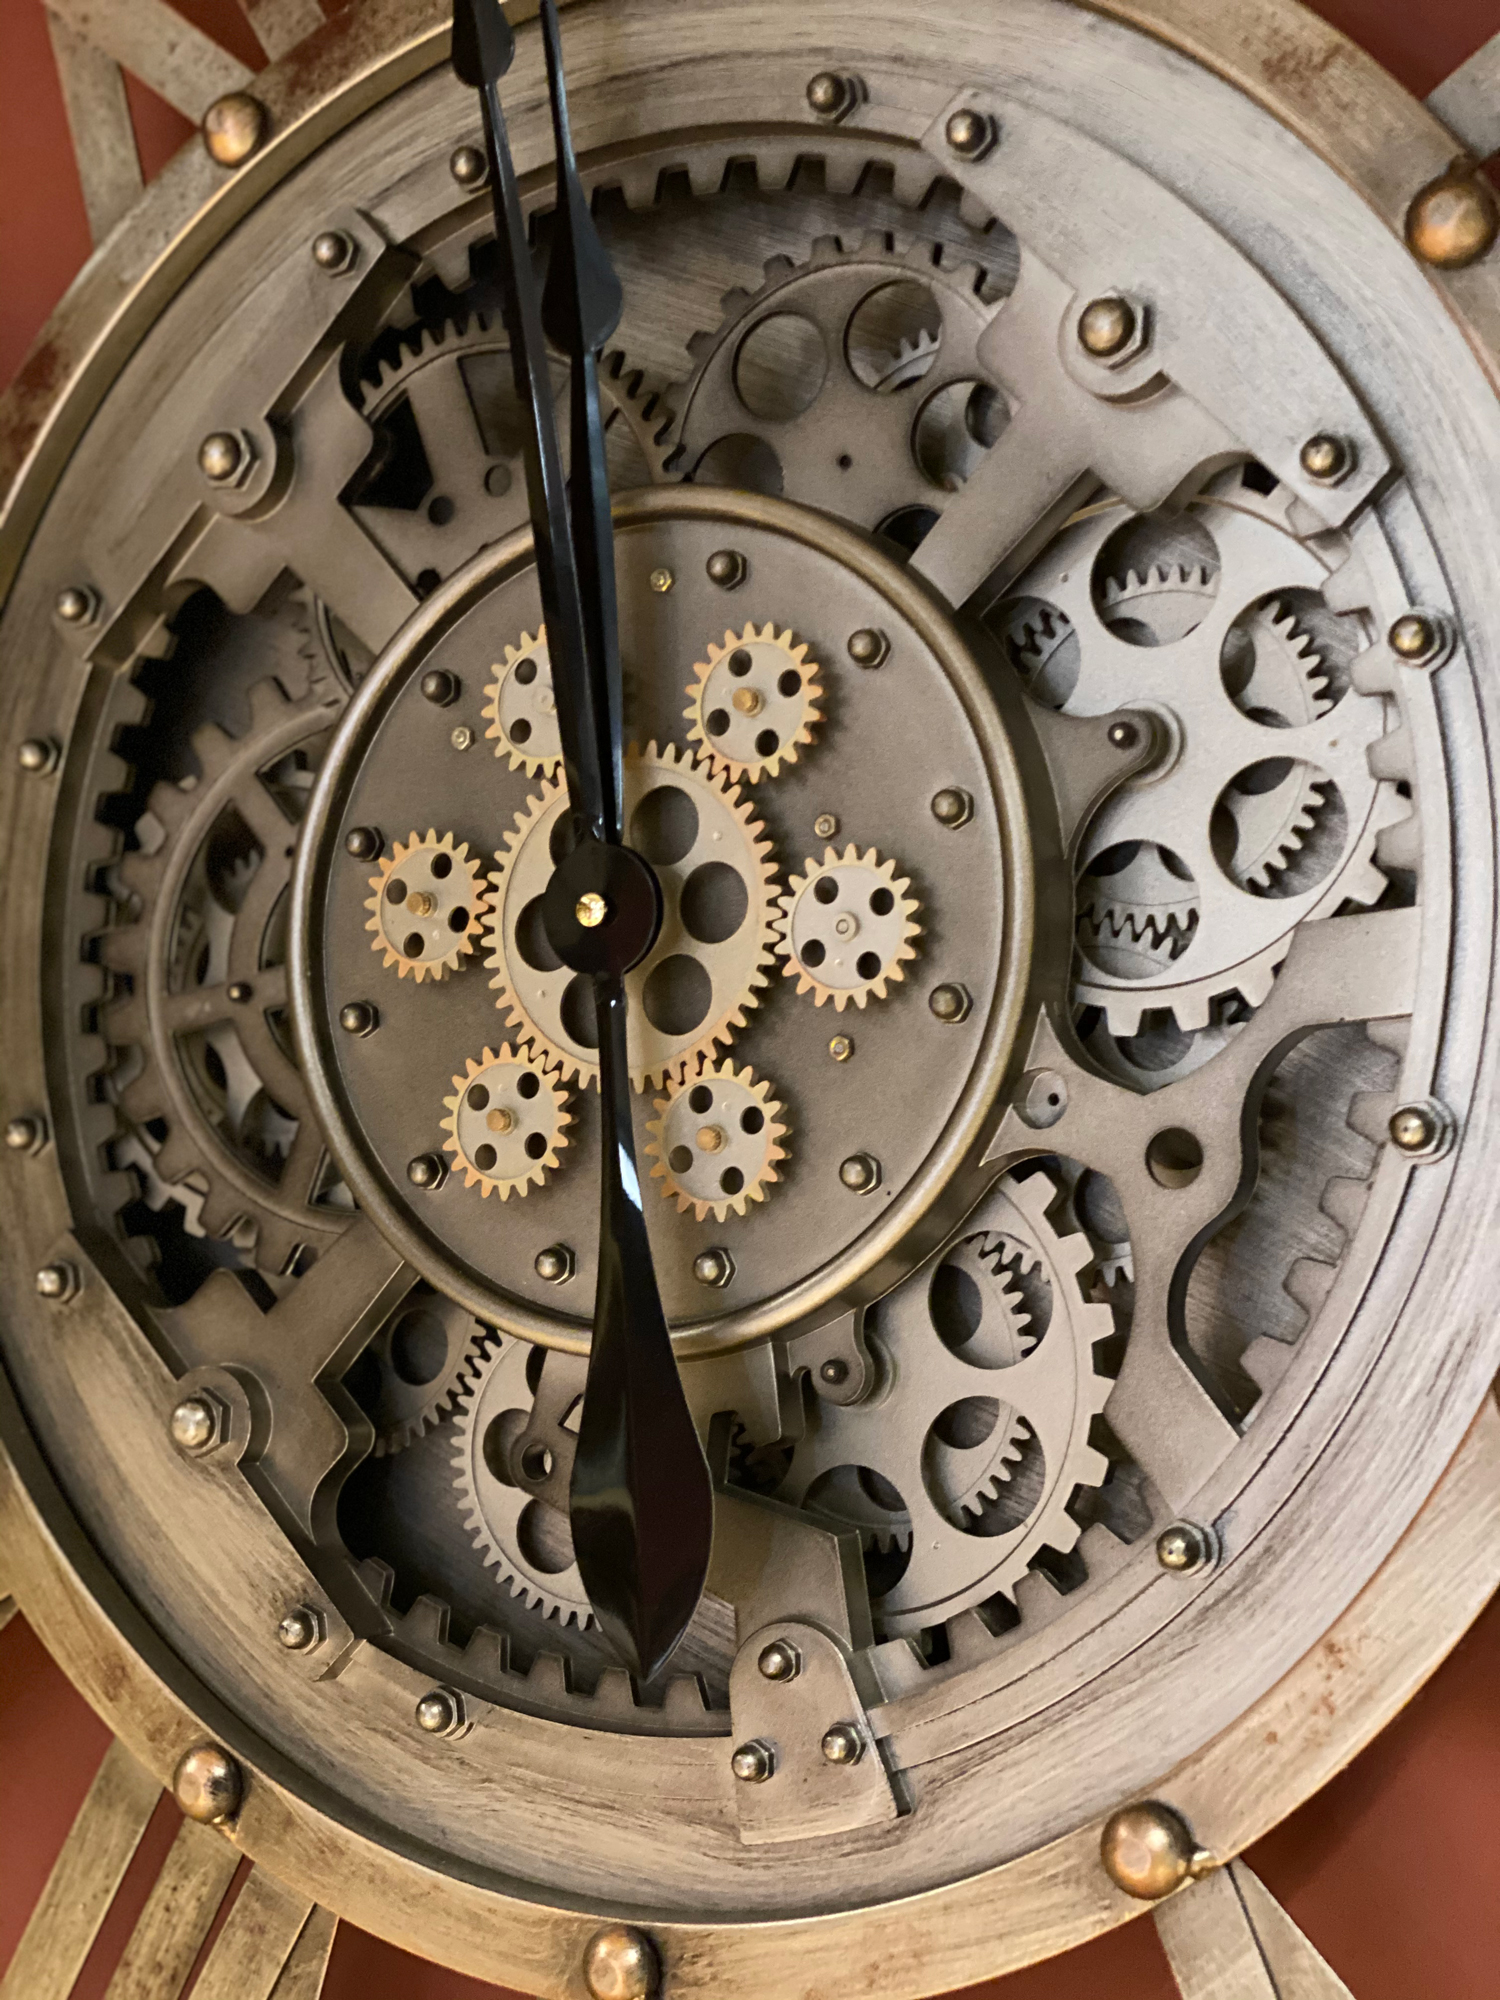 Skeleton clock with gears exposed